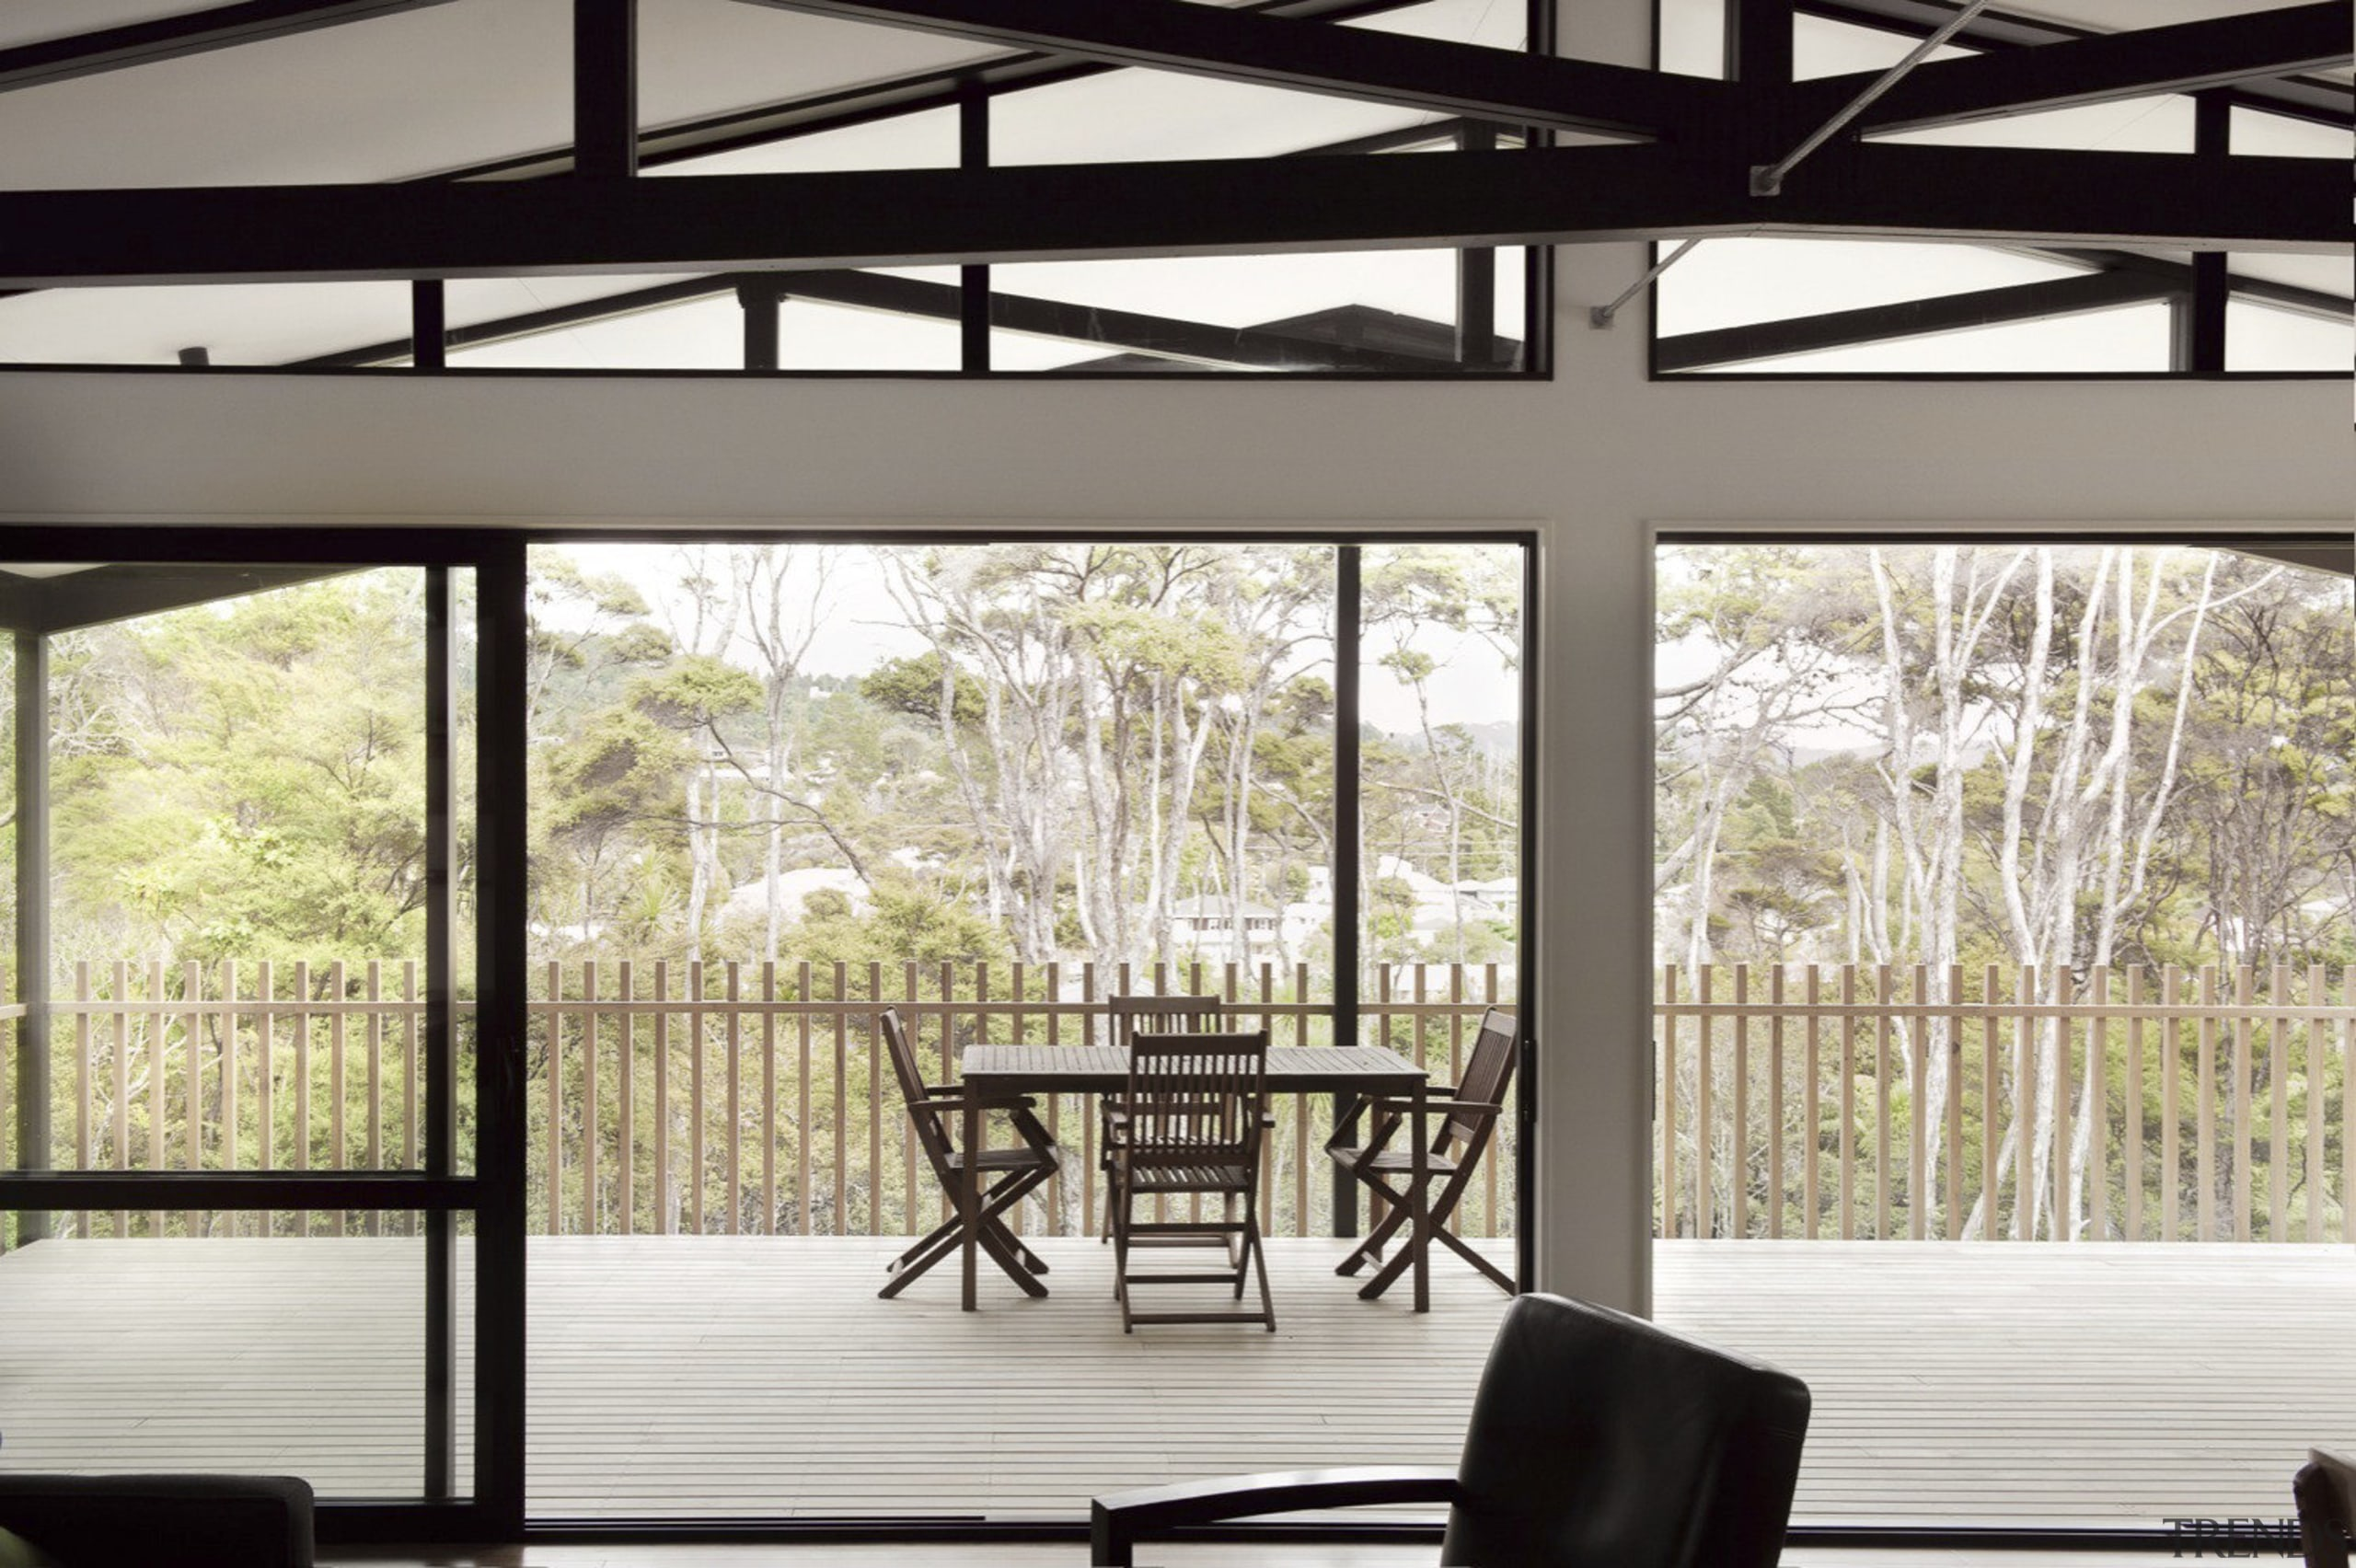 City meets country at Karaka Lakes - City architecture, daylighting, glass, home, house, interior design, shade, window, white